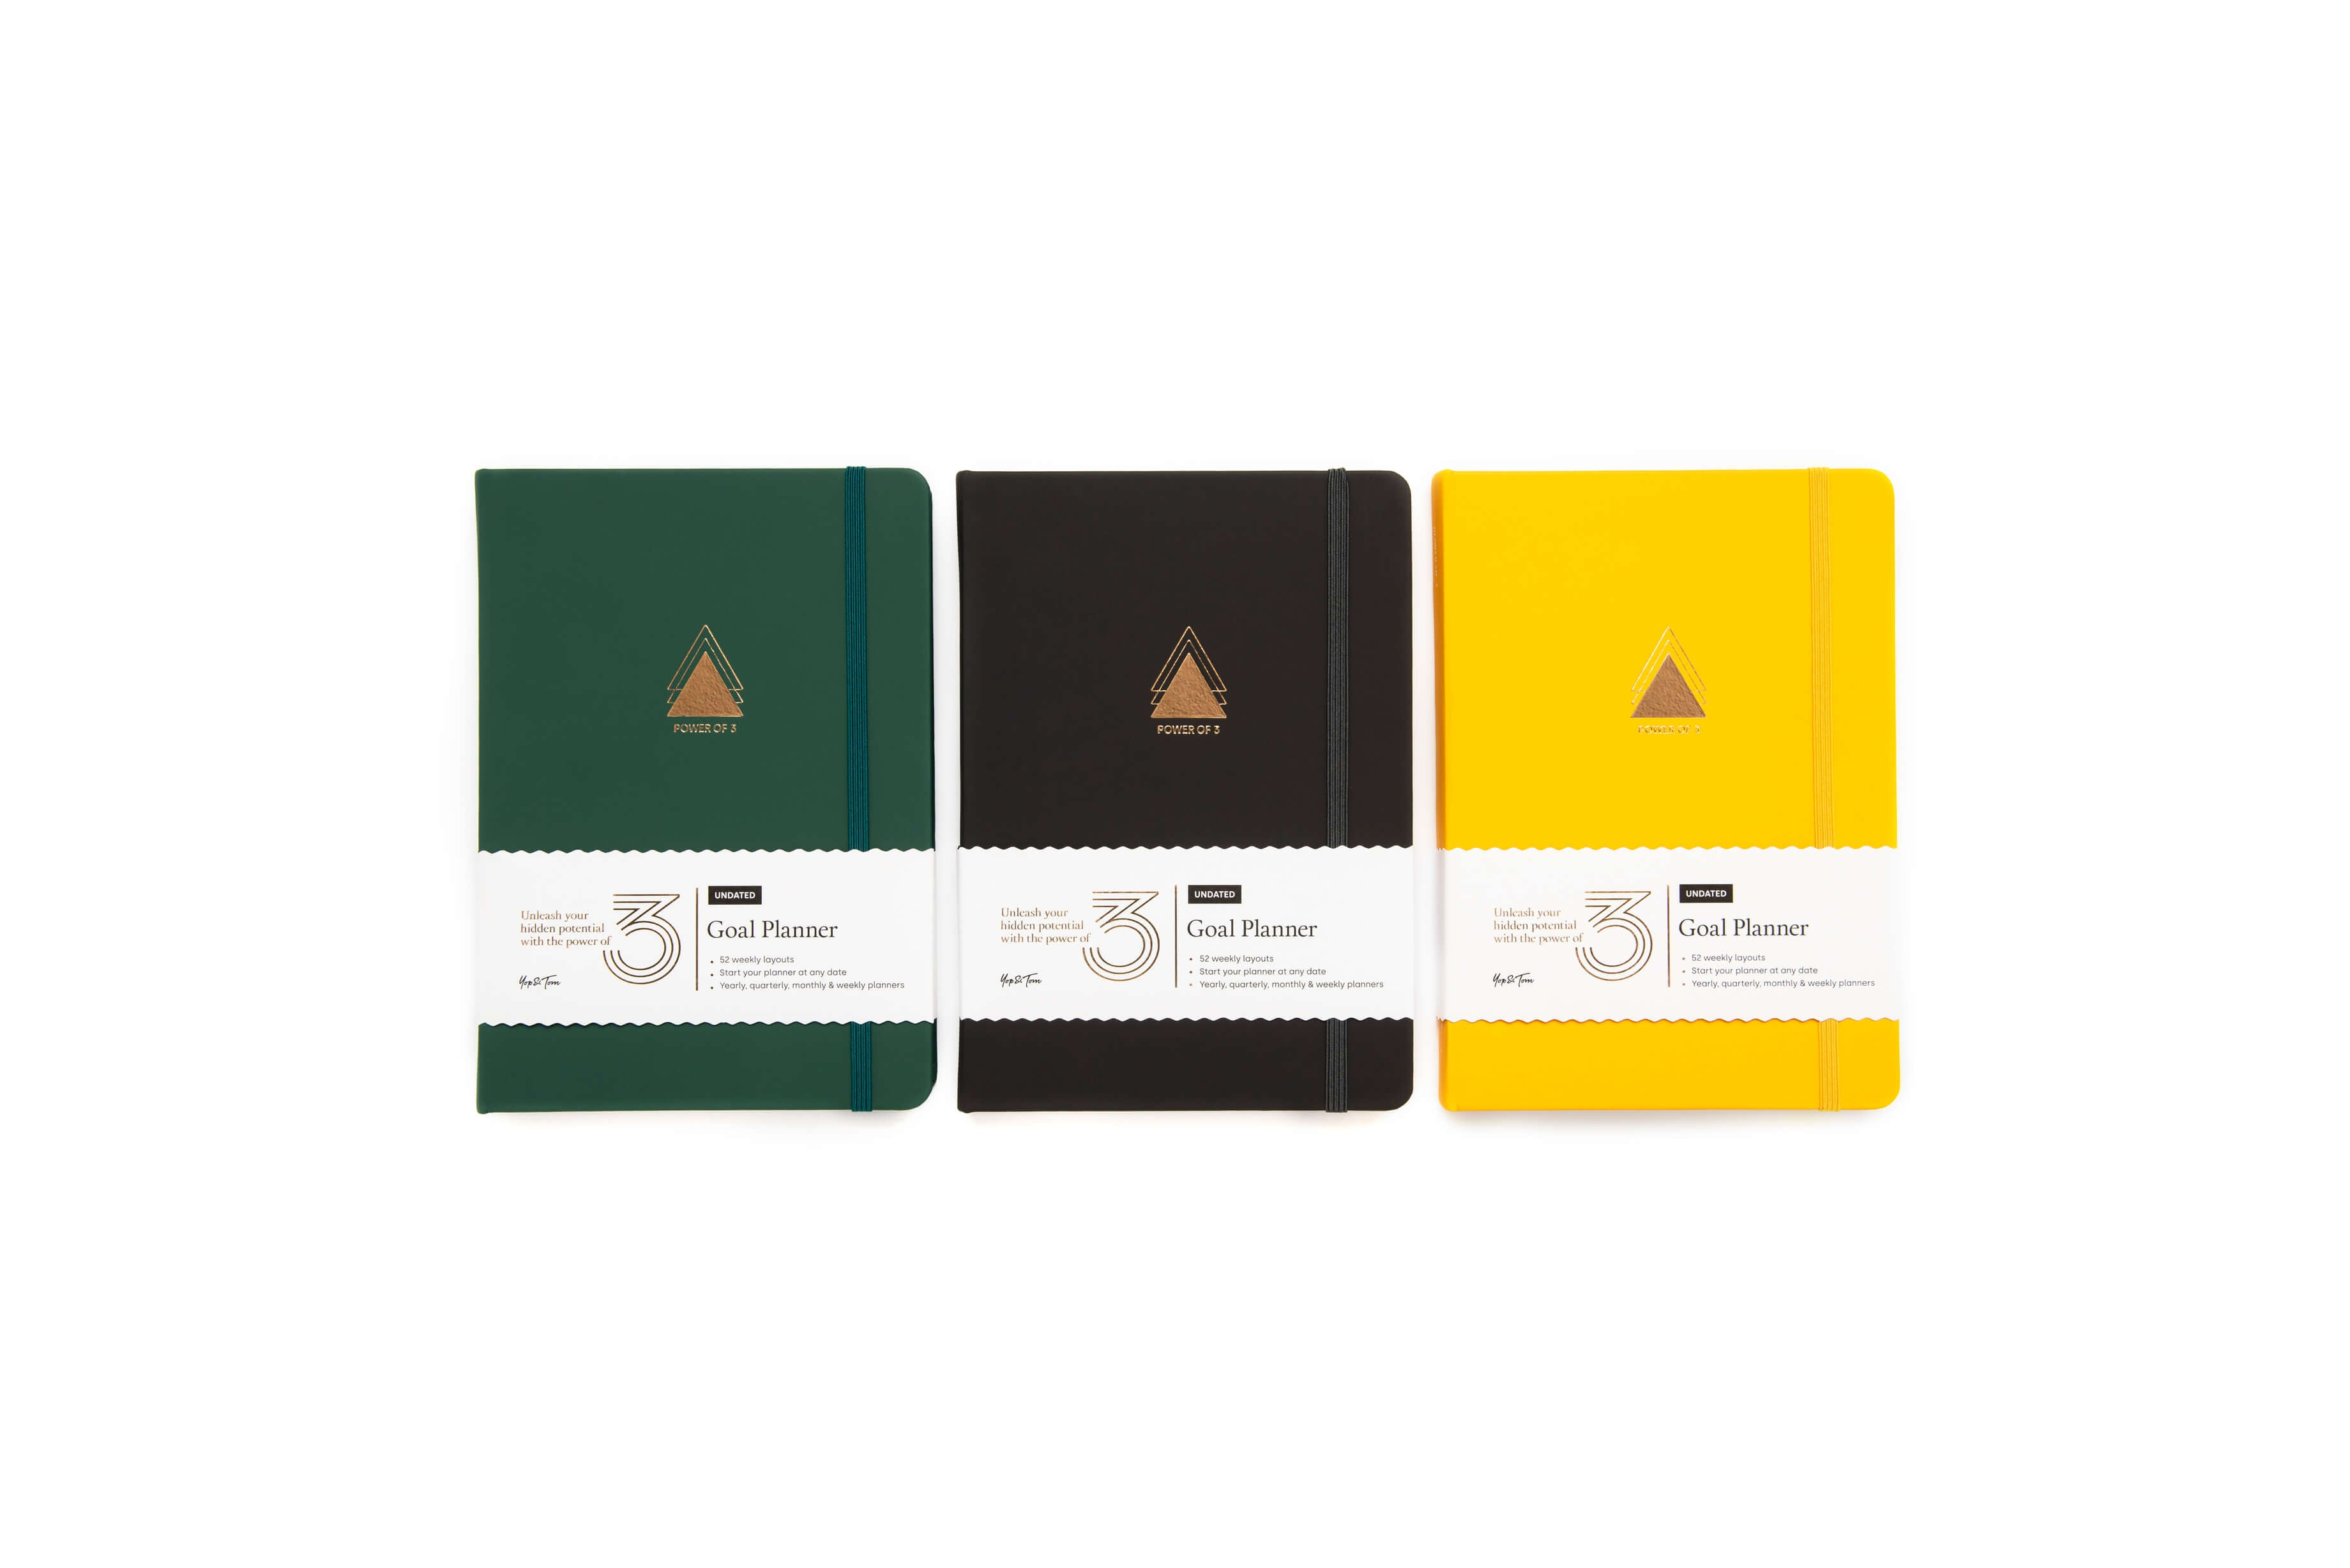 Power of 3 goal planners in forest green, charcoal and sunshine yellow